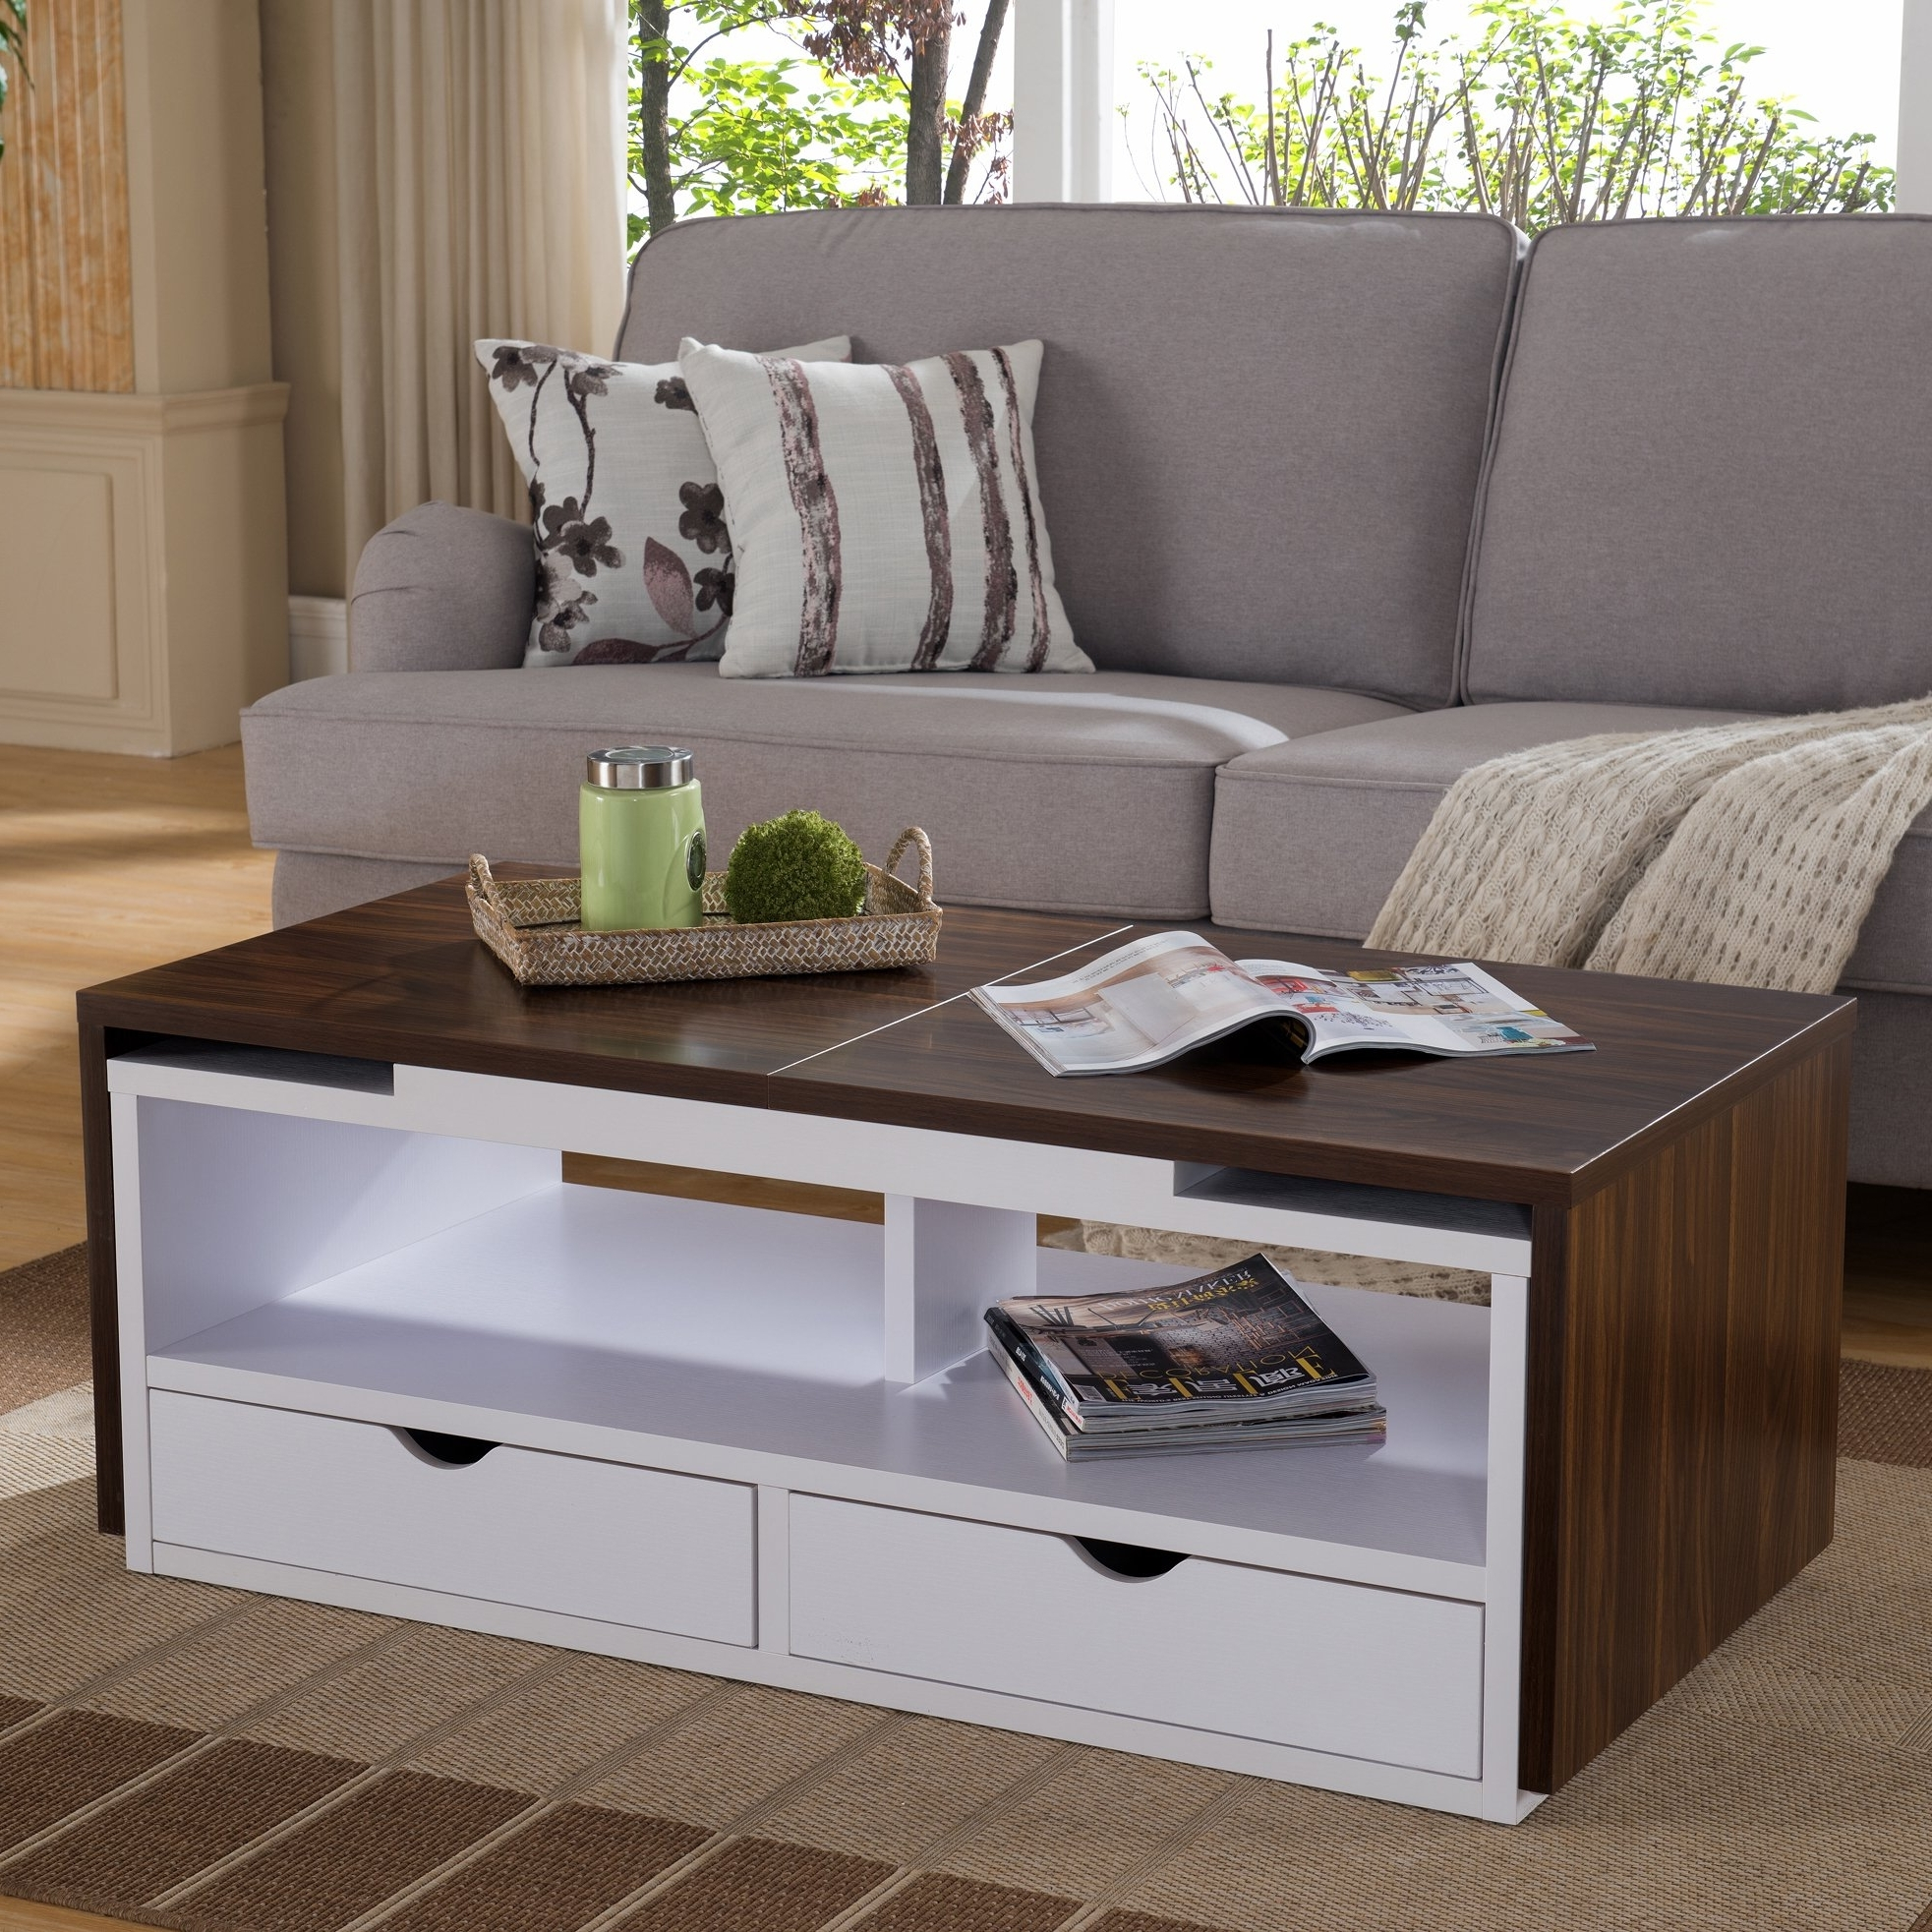 Nola Glass Rectangular Coffee Table With Storage Shelf, Cocktail Regarding Well Known Nola Cocktail Tables (Gallery 3 of 20)